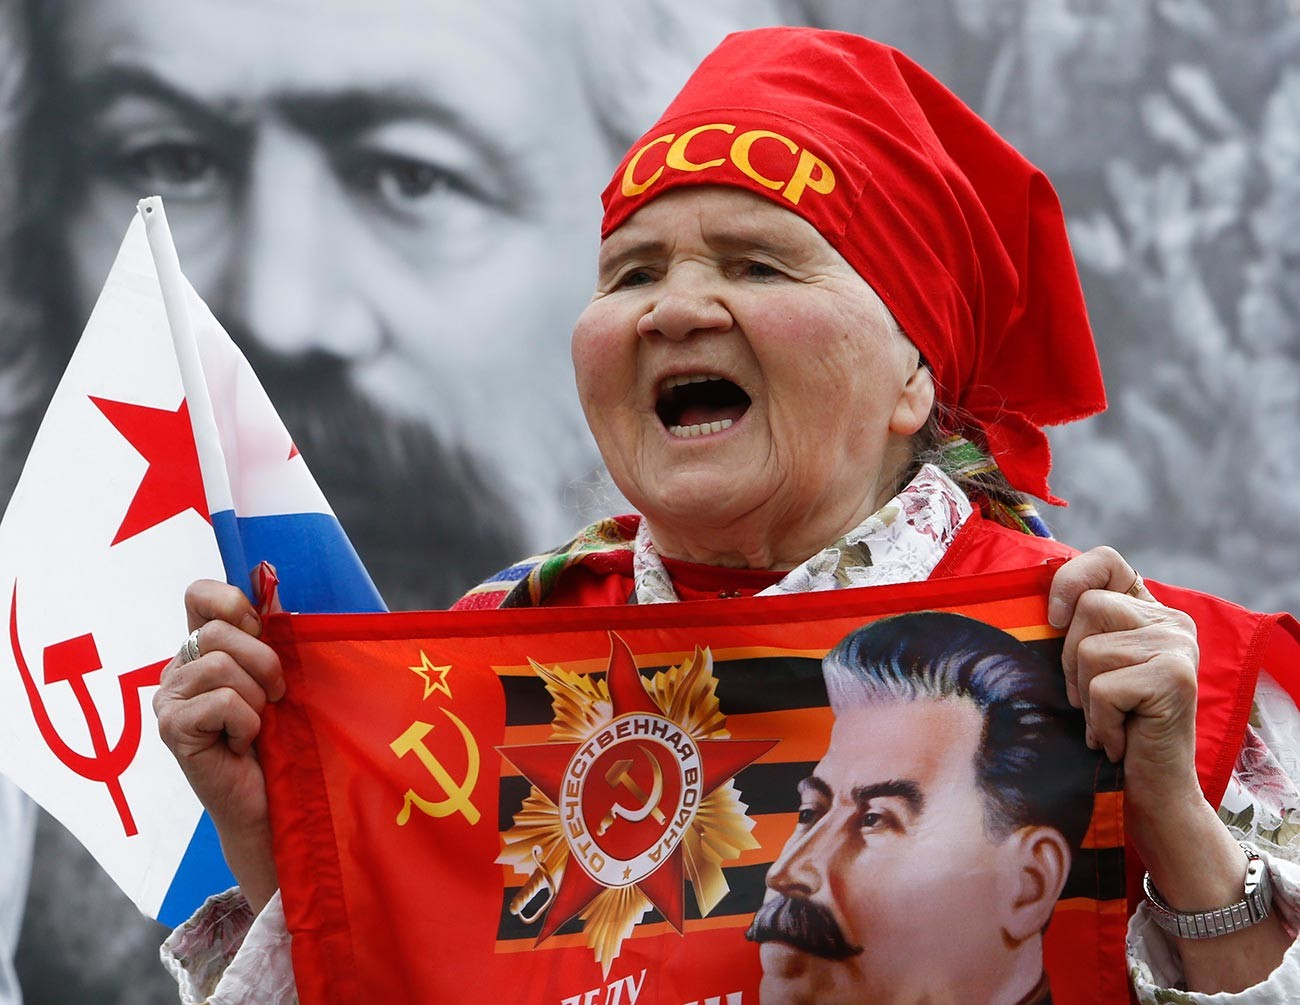 Supporter of Communist party shouts slogans during May Day rally in Moscow.